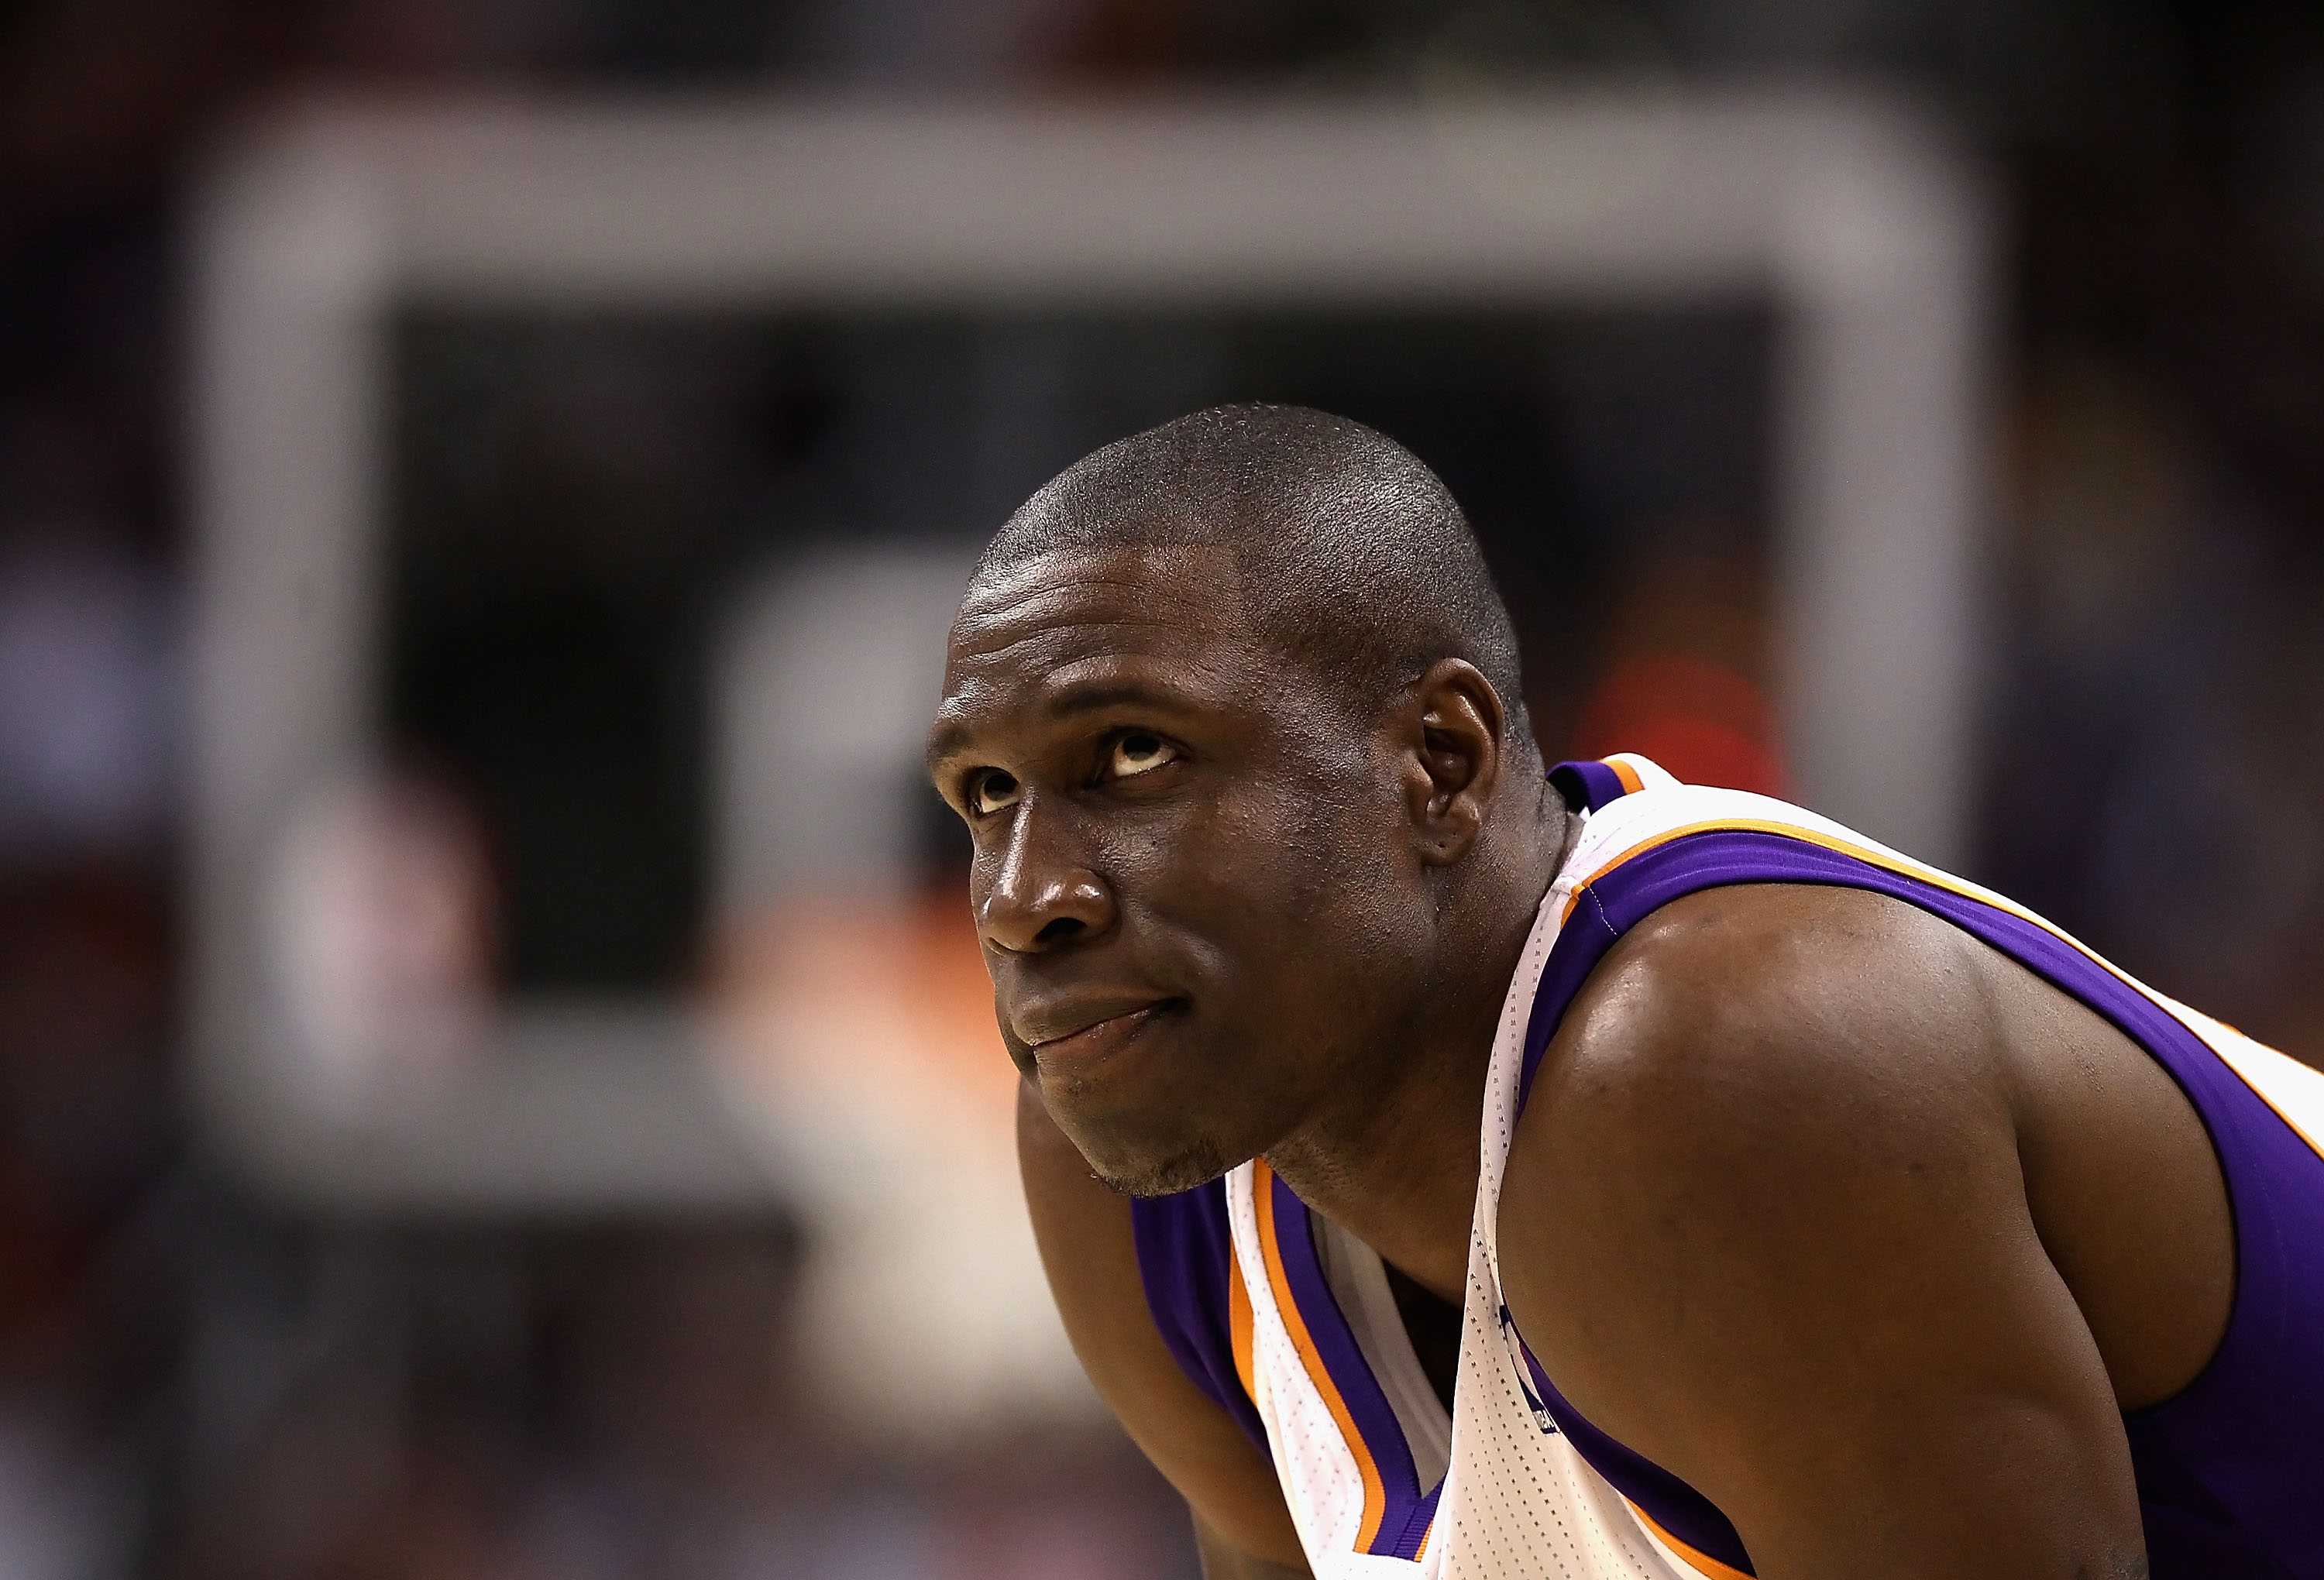 PHOENIX - DECEMBER 23:  Mickael Pietrus #12 of the Phoenix Suns looks up a the clock during the NBA game against the Miami Heat at US Airways Center on December 23, 2010 in Phoenix, Arizona. The Heat defeated the Suns 95-83.  NOTE TO USER: User expressly